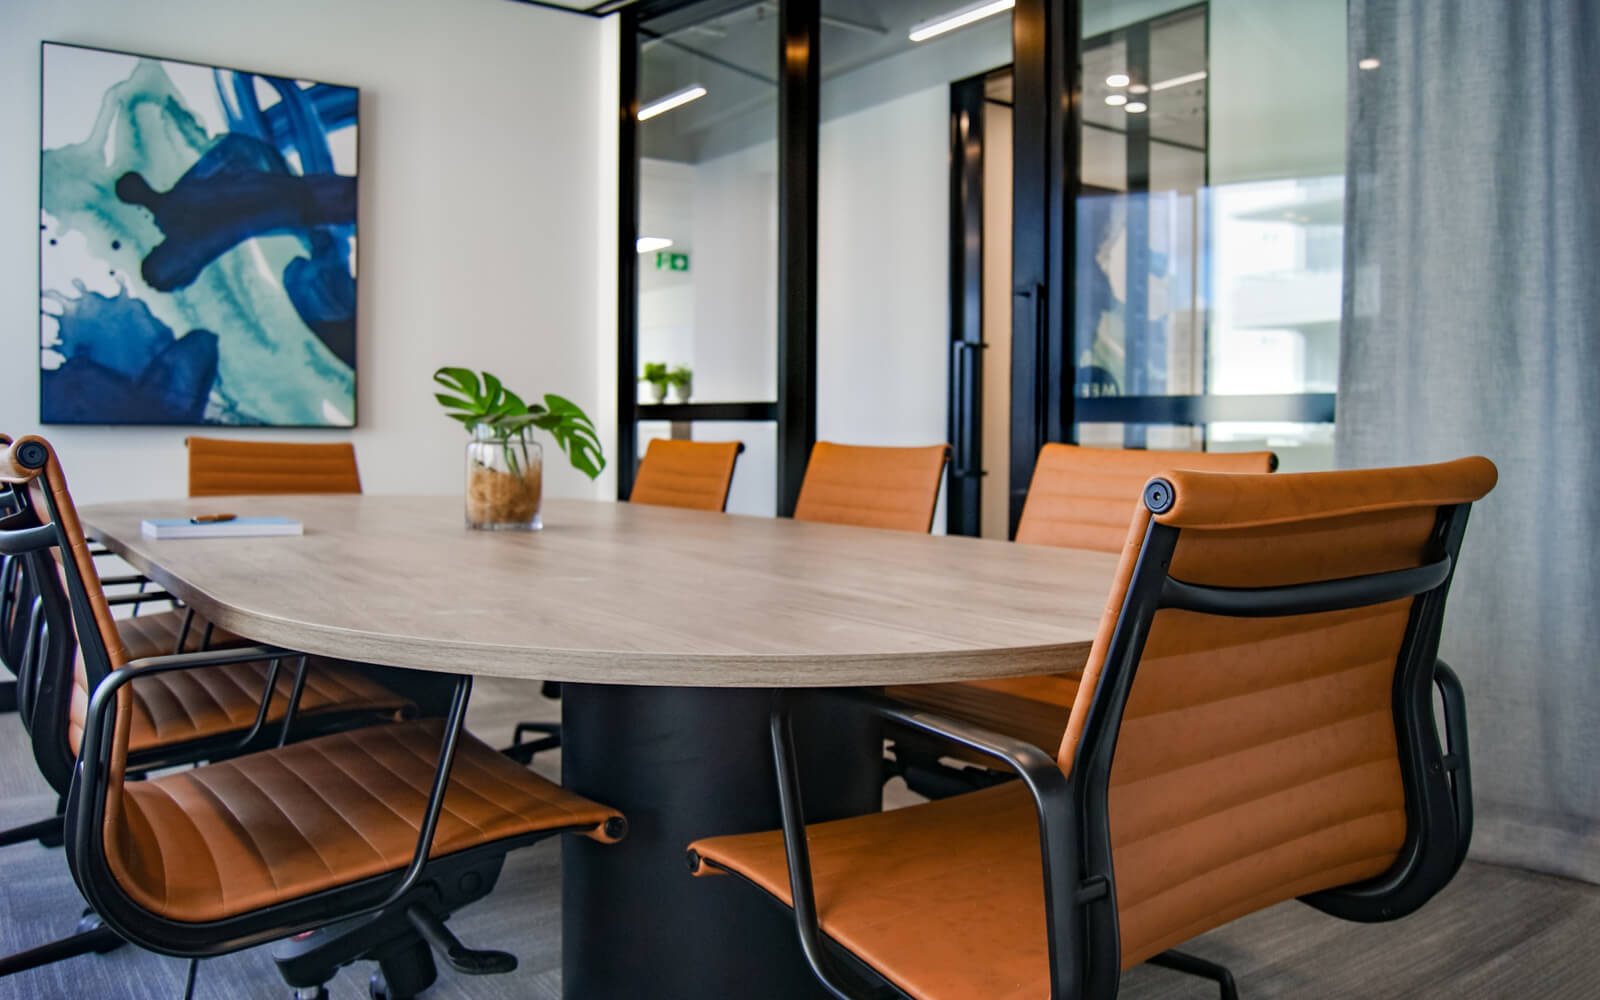 Office conference room setting with wood table, orange chairs, and a plant